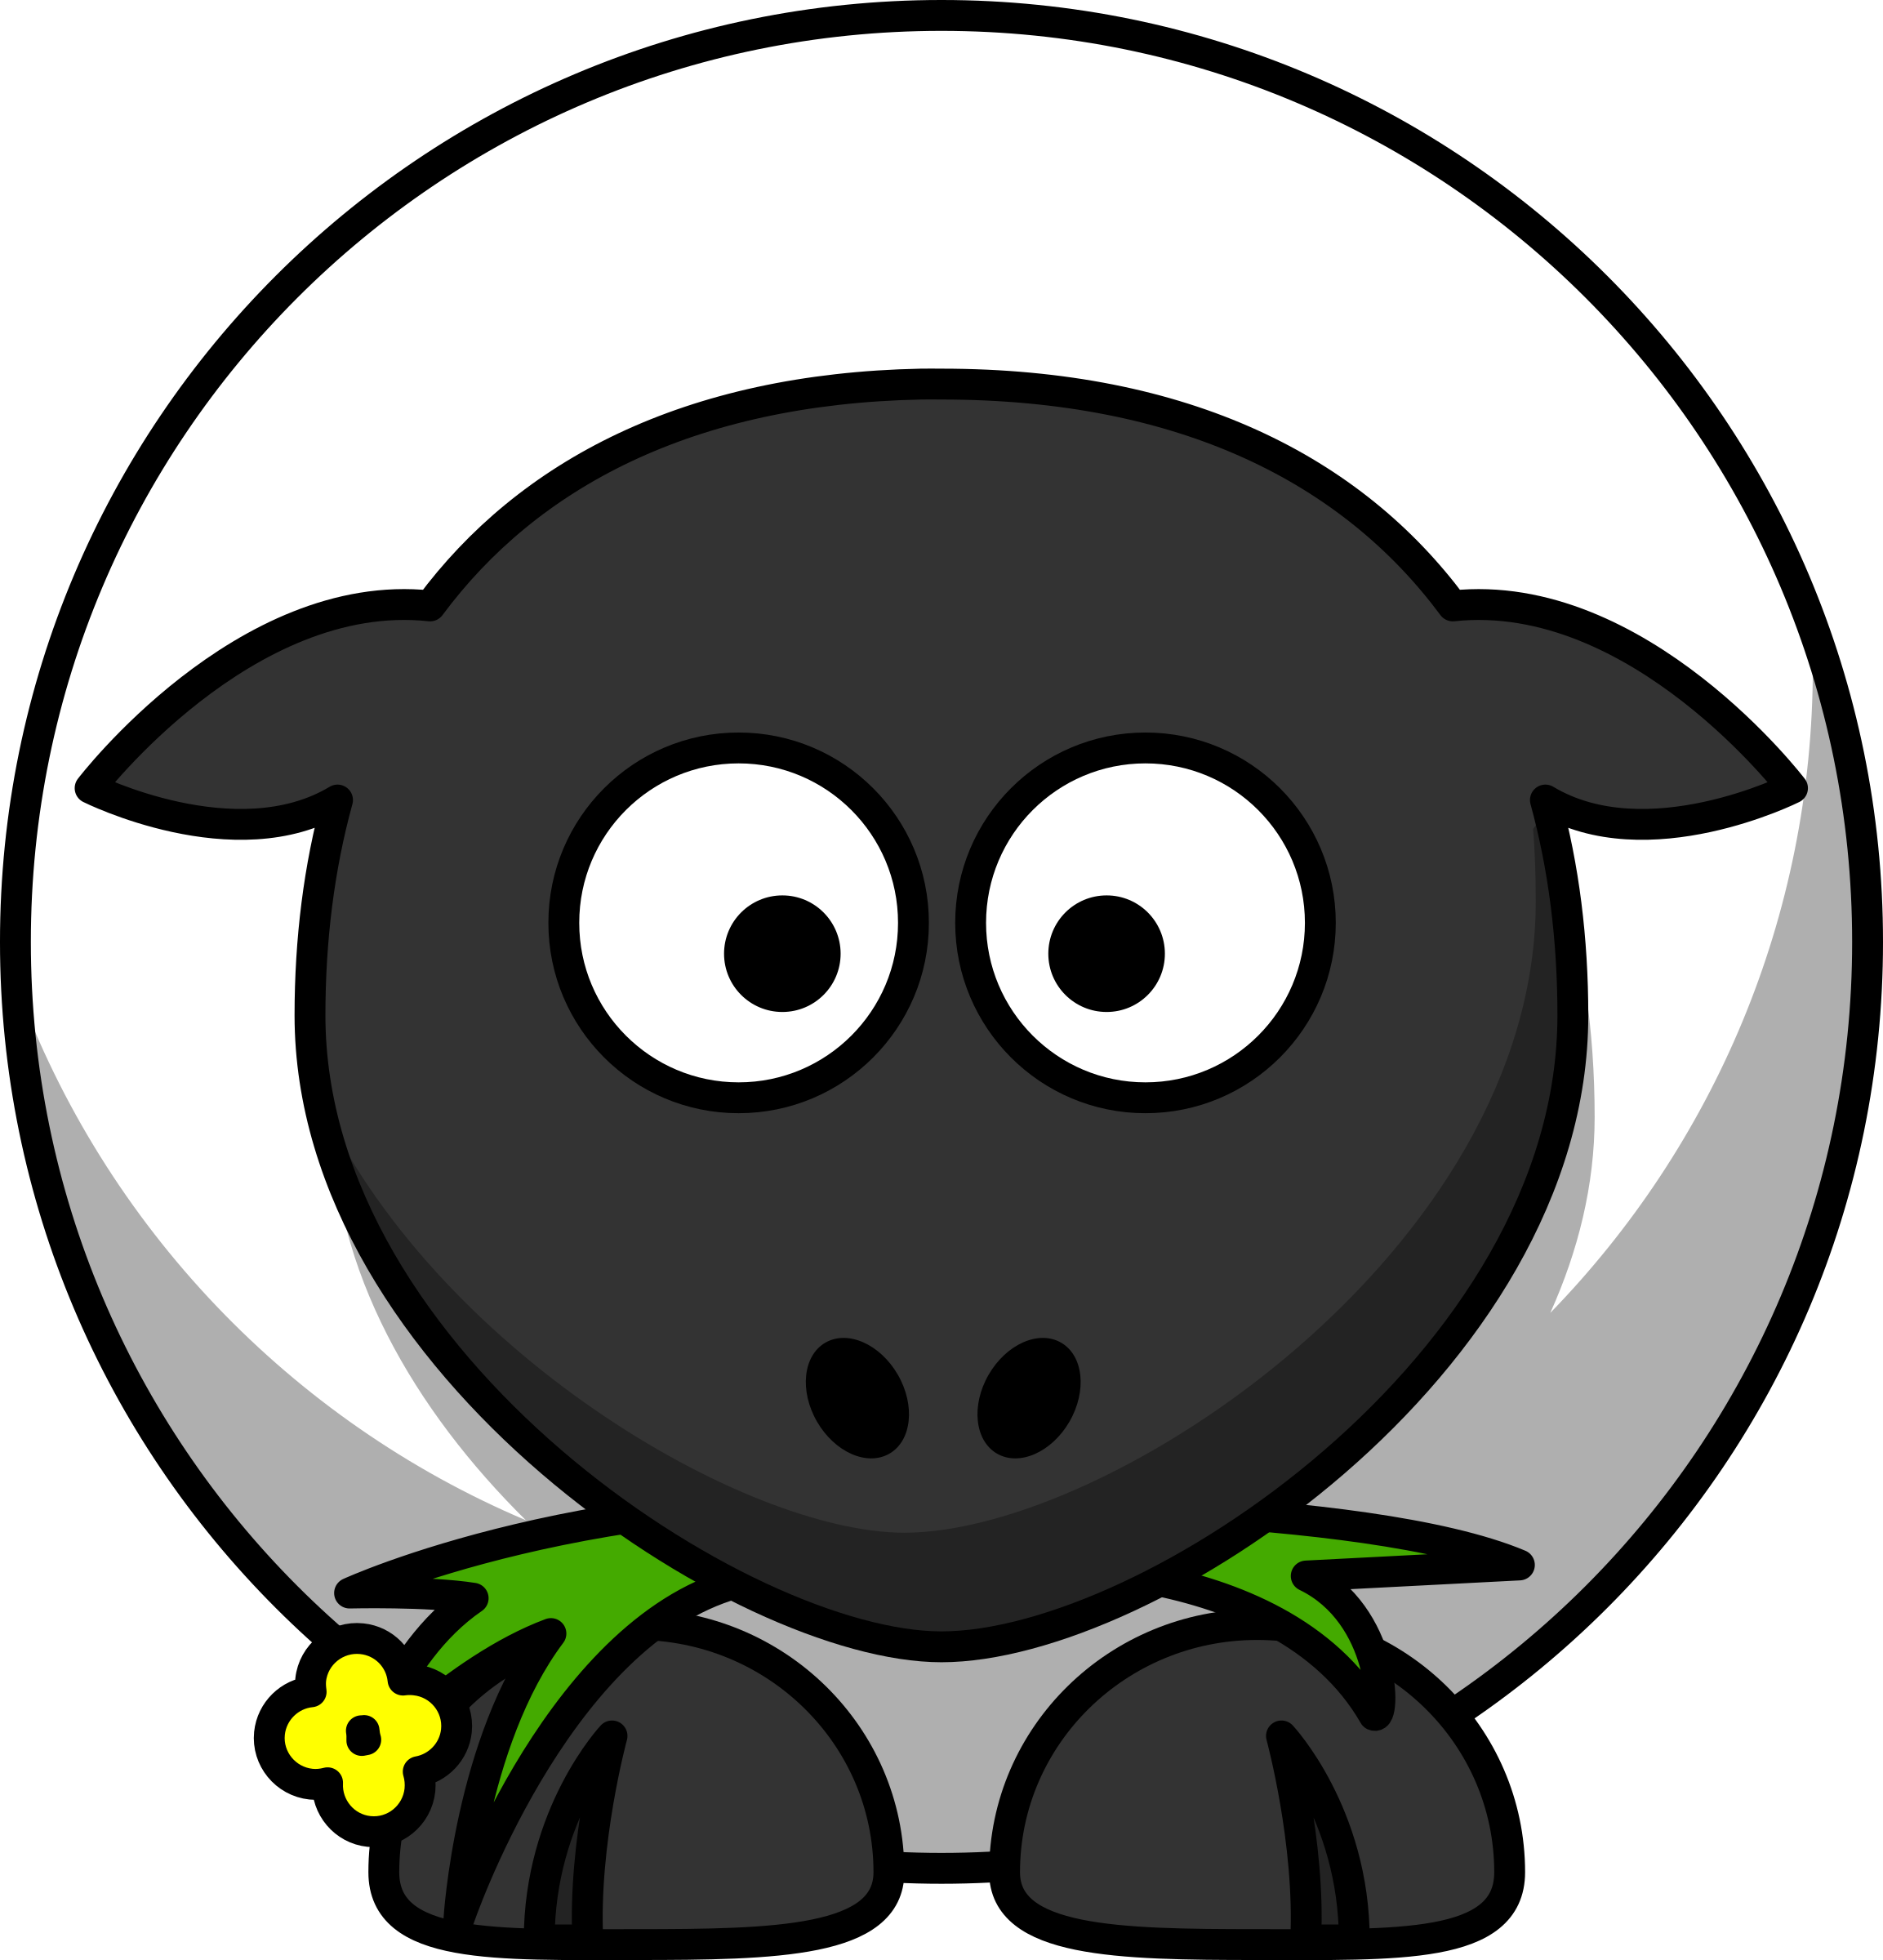 Cartoon sheep by lemmling